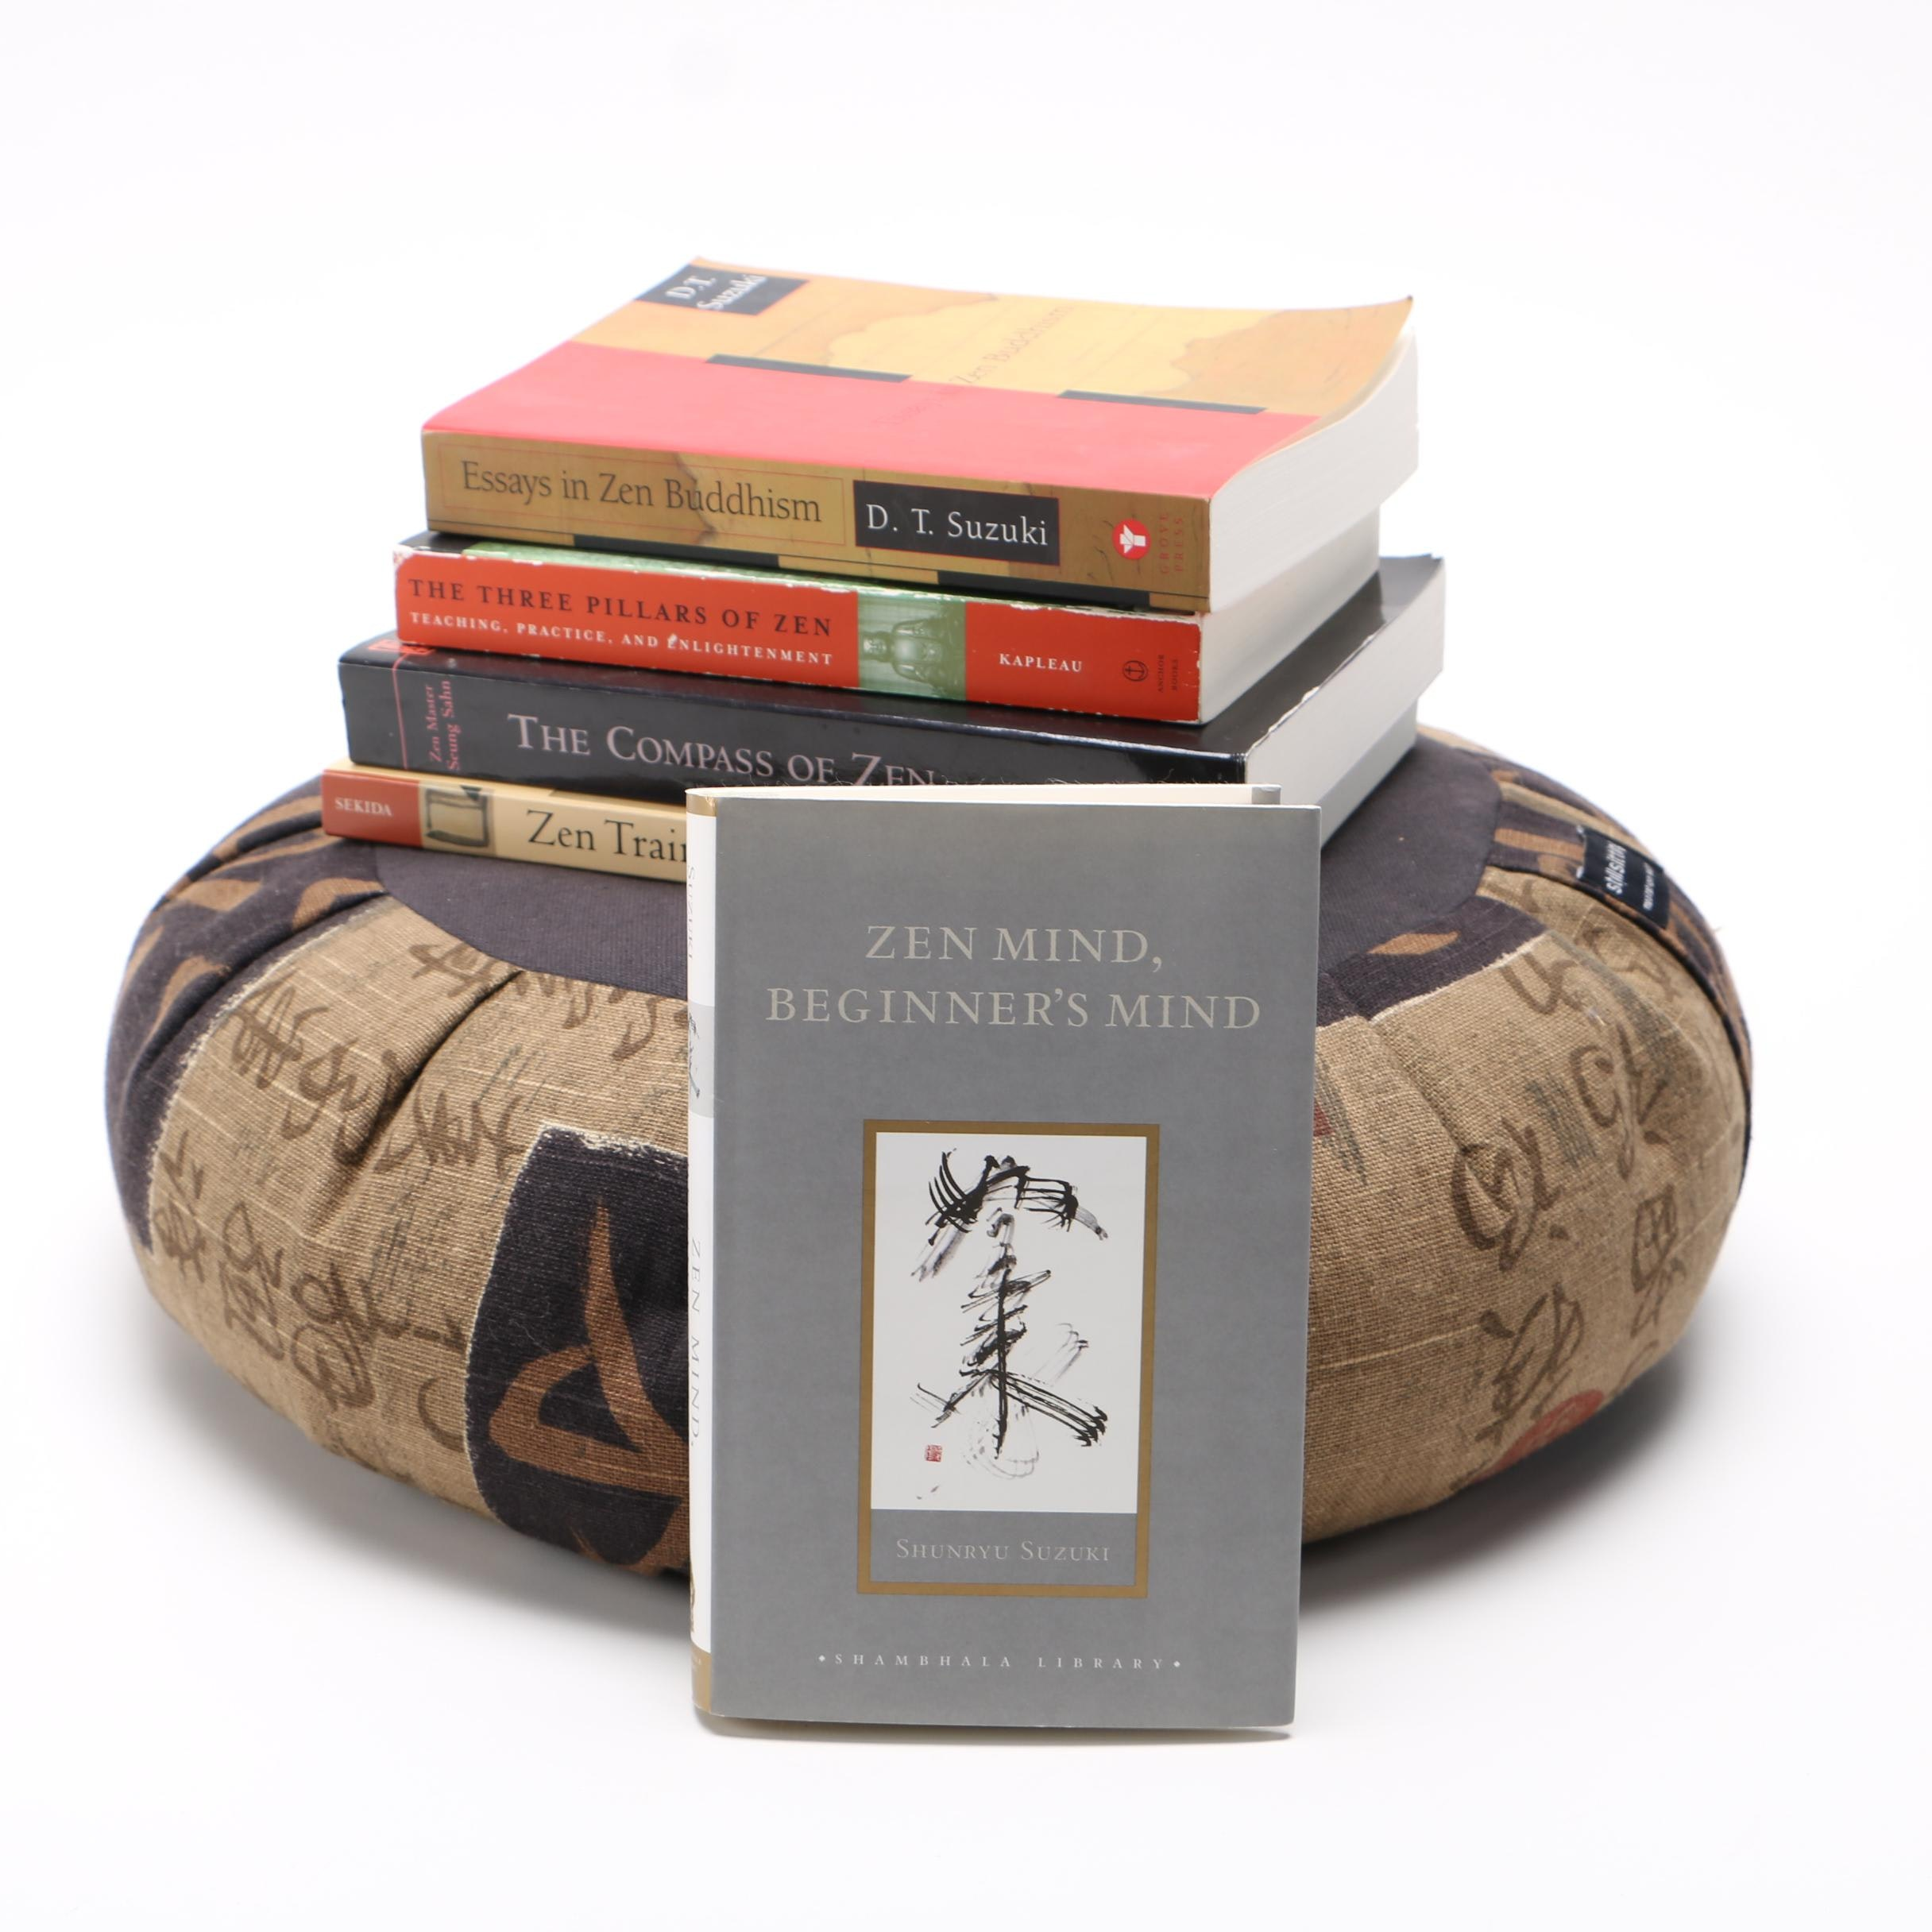 Meditation Pillow With a Collection of Books on Zen Philosophy